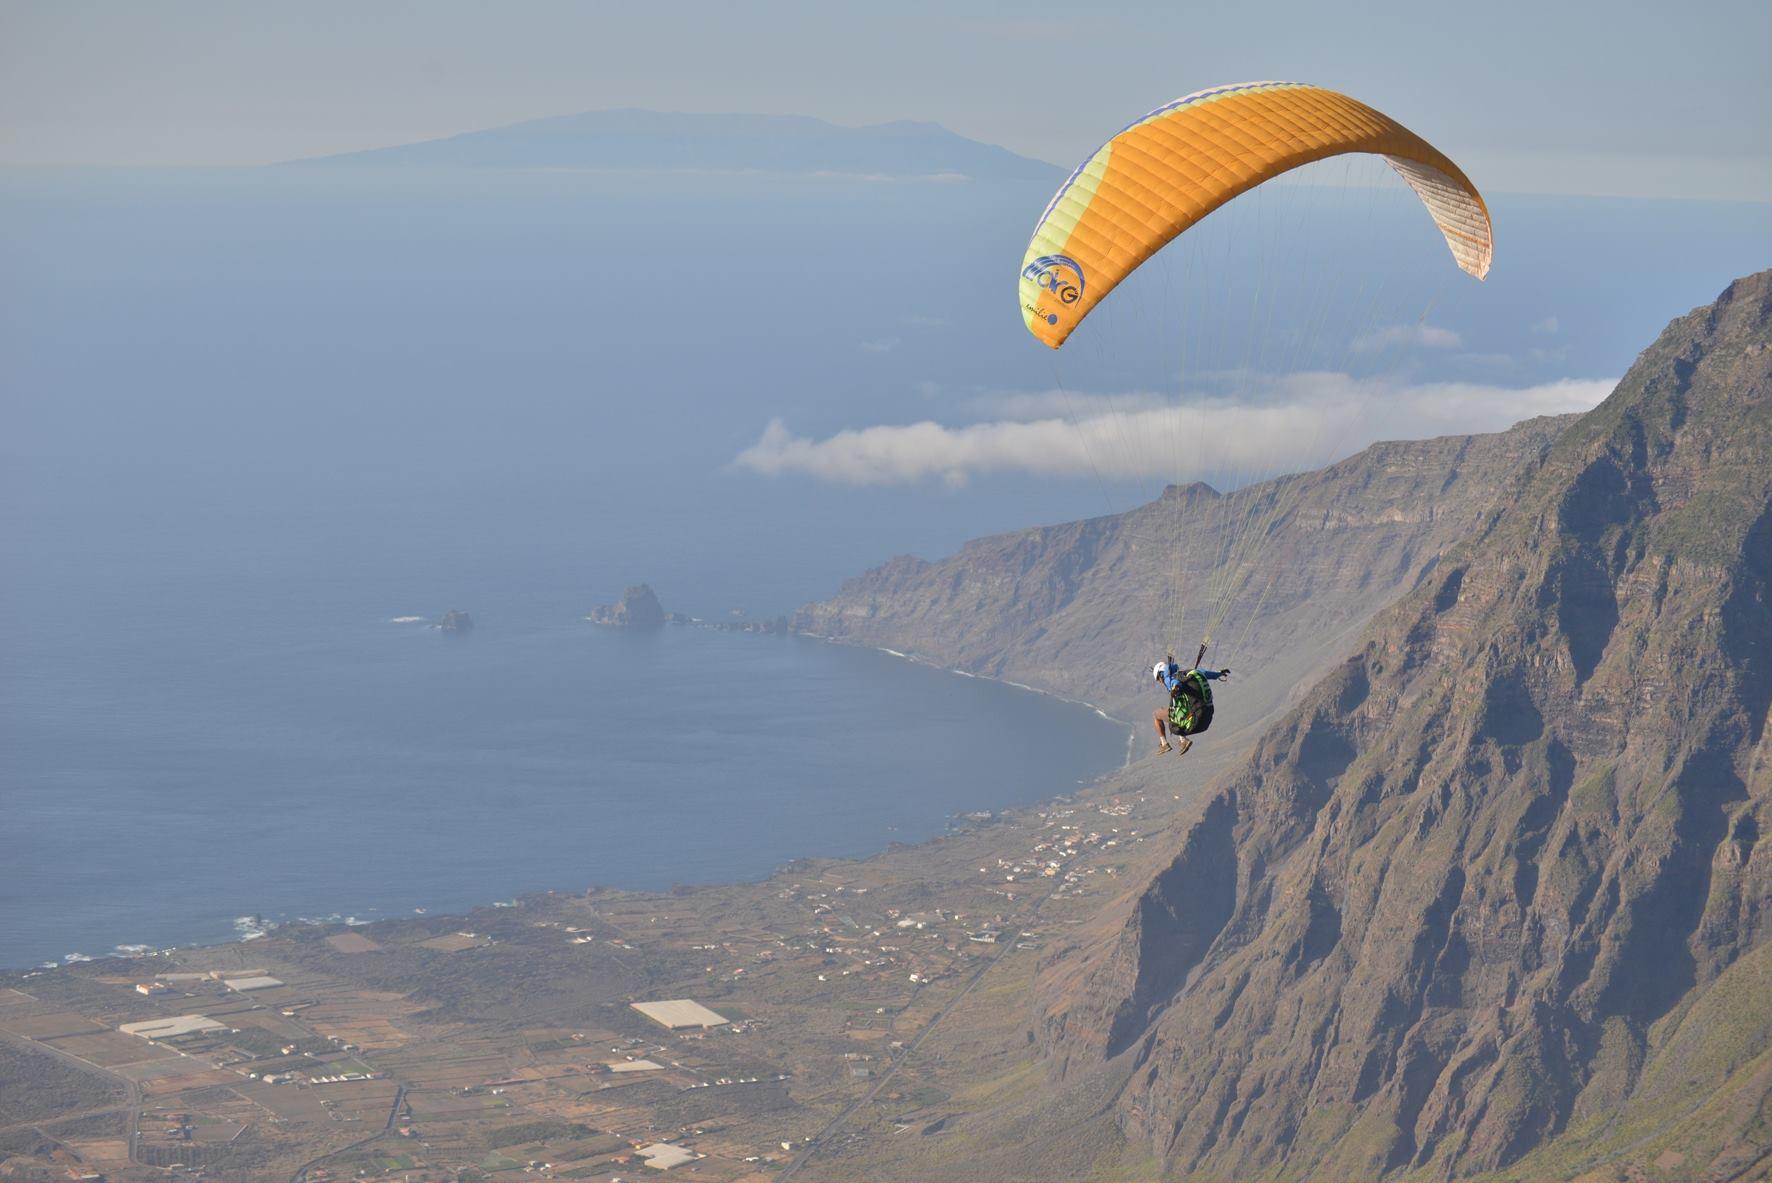 The international paragliding concentration of El Hierro is approaching